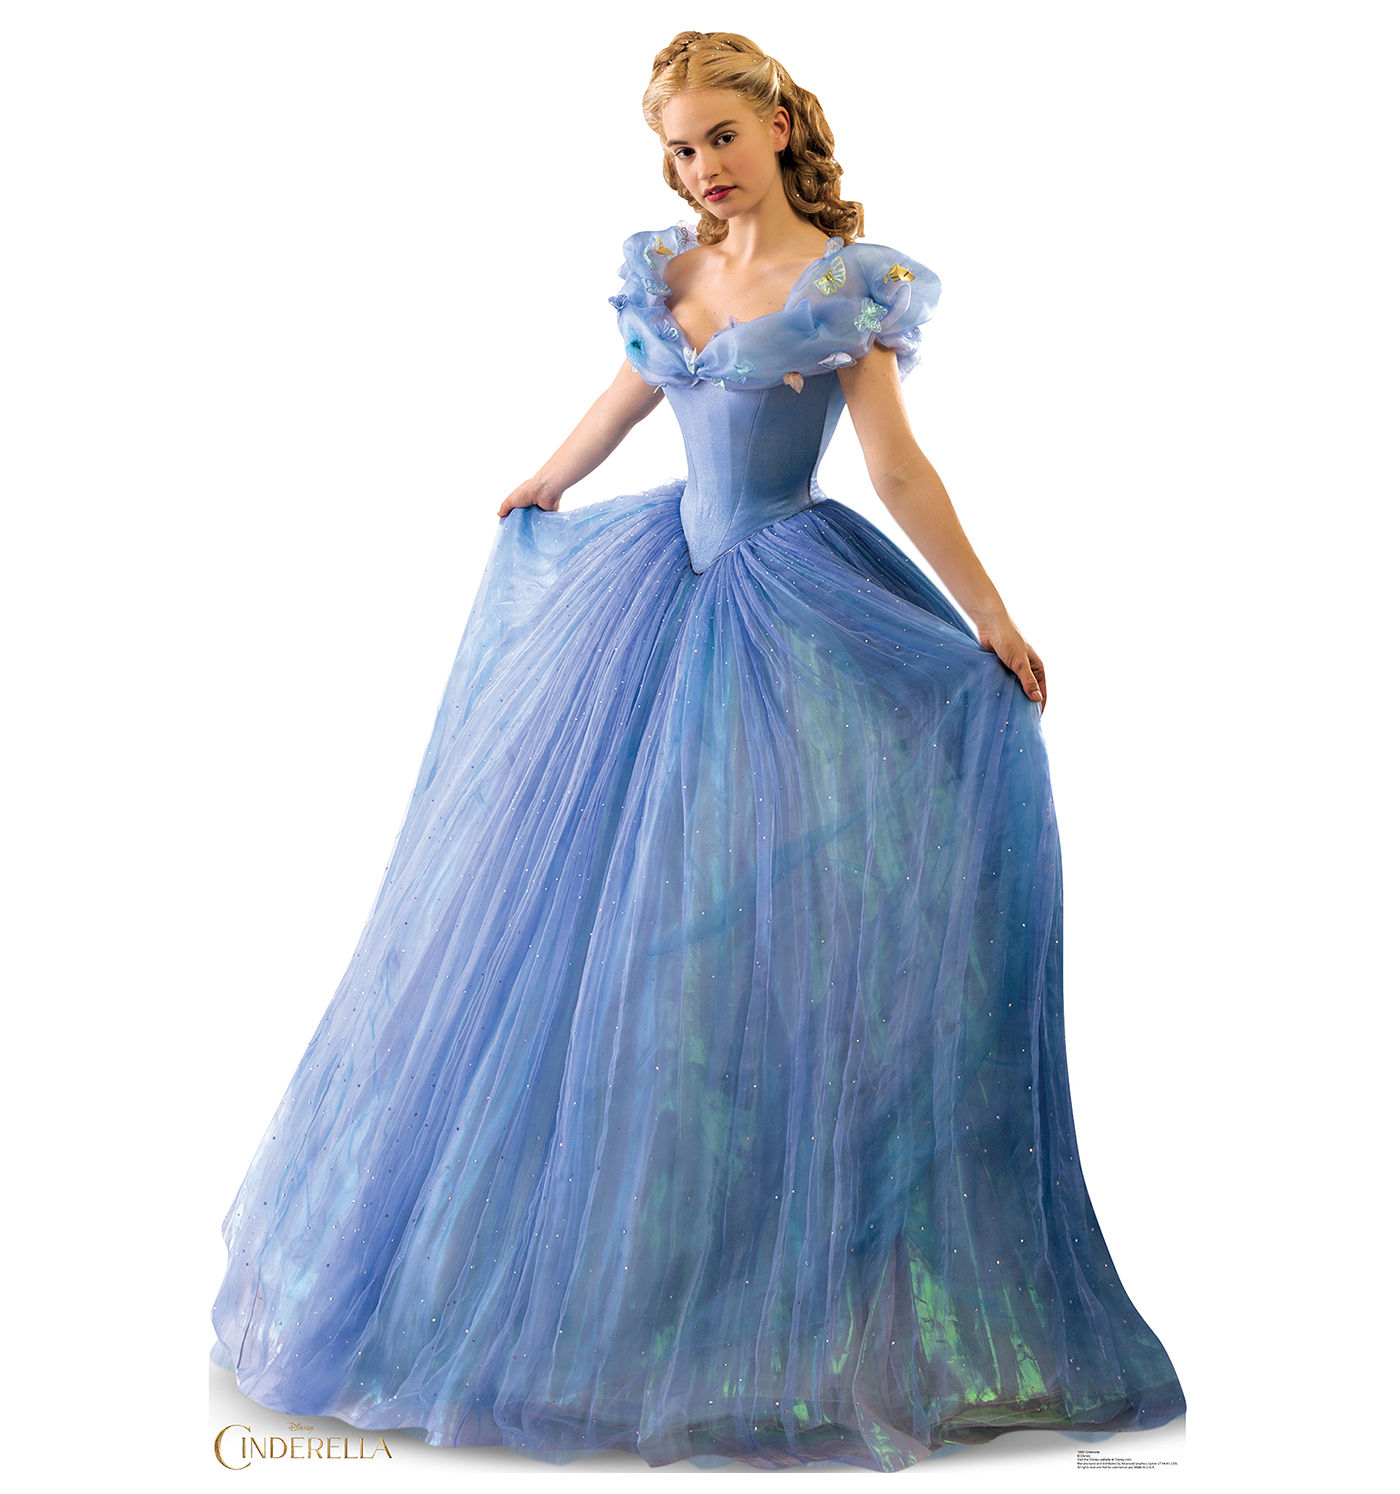 Cinderella the Movie Ball Gown Disney Princess Standup Standee ...